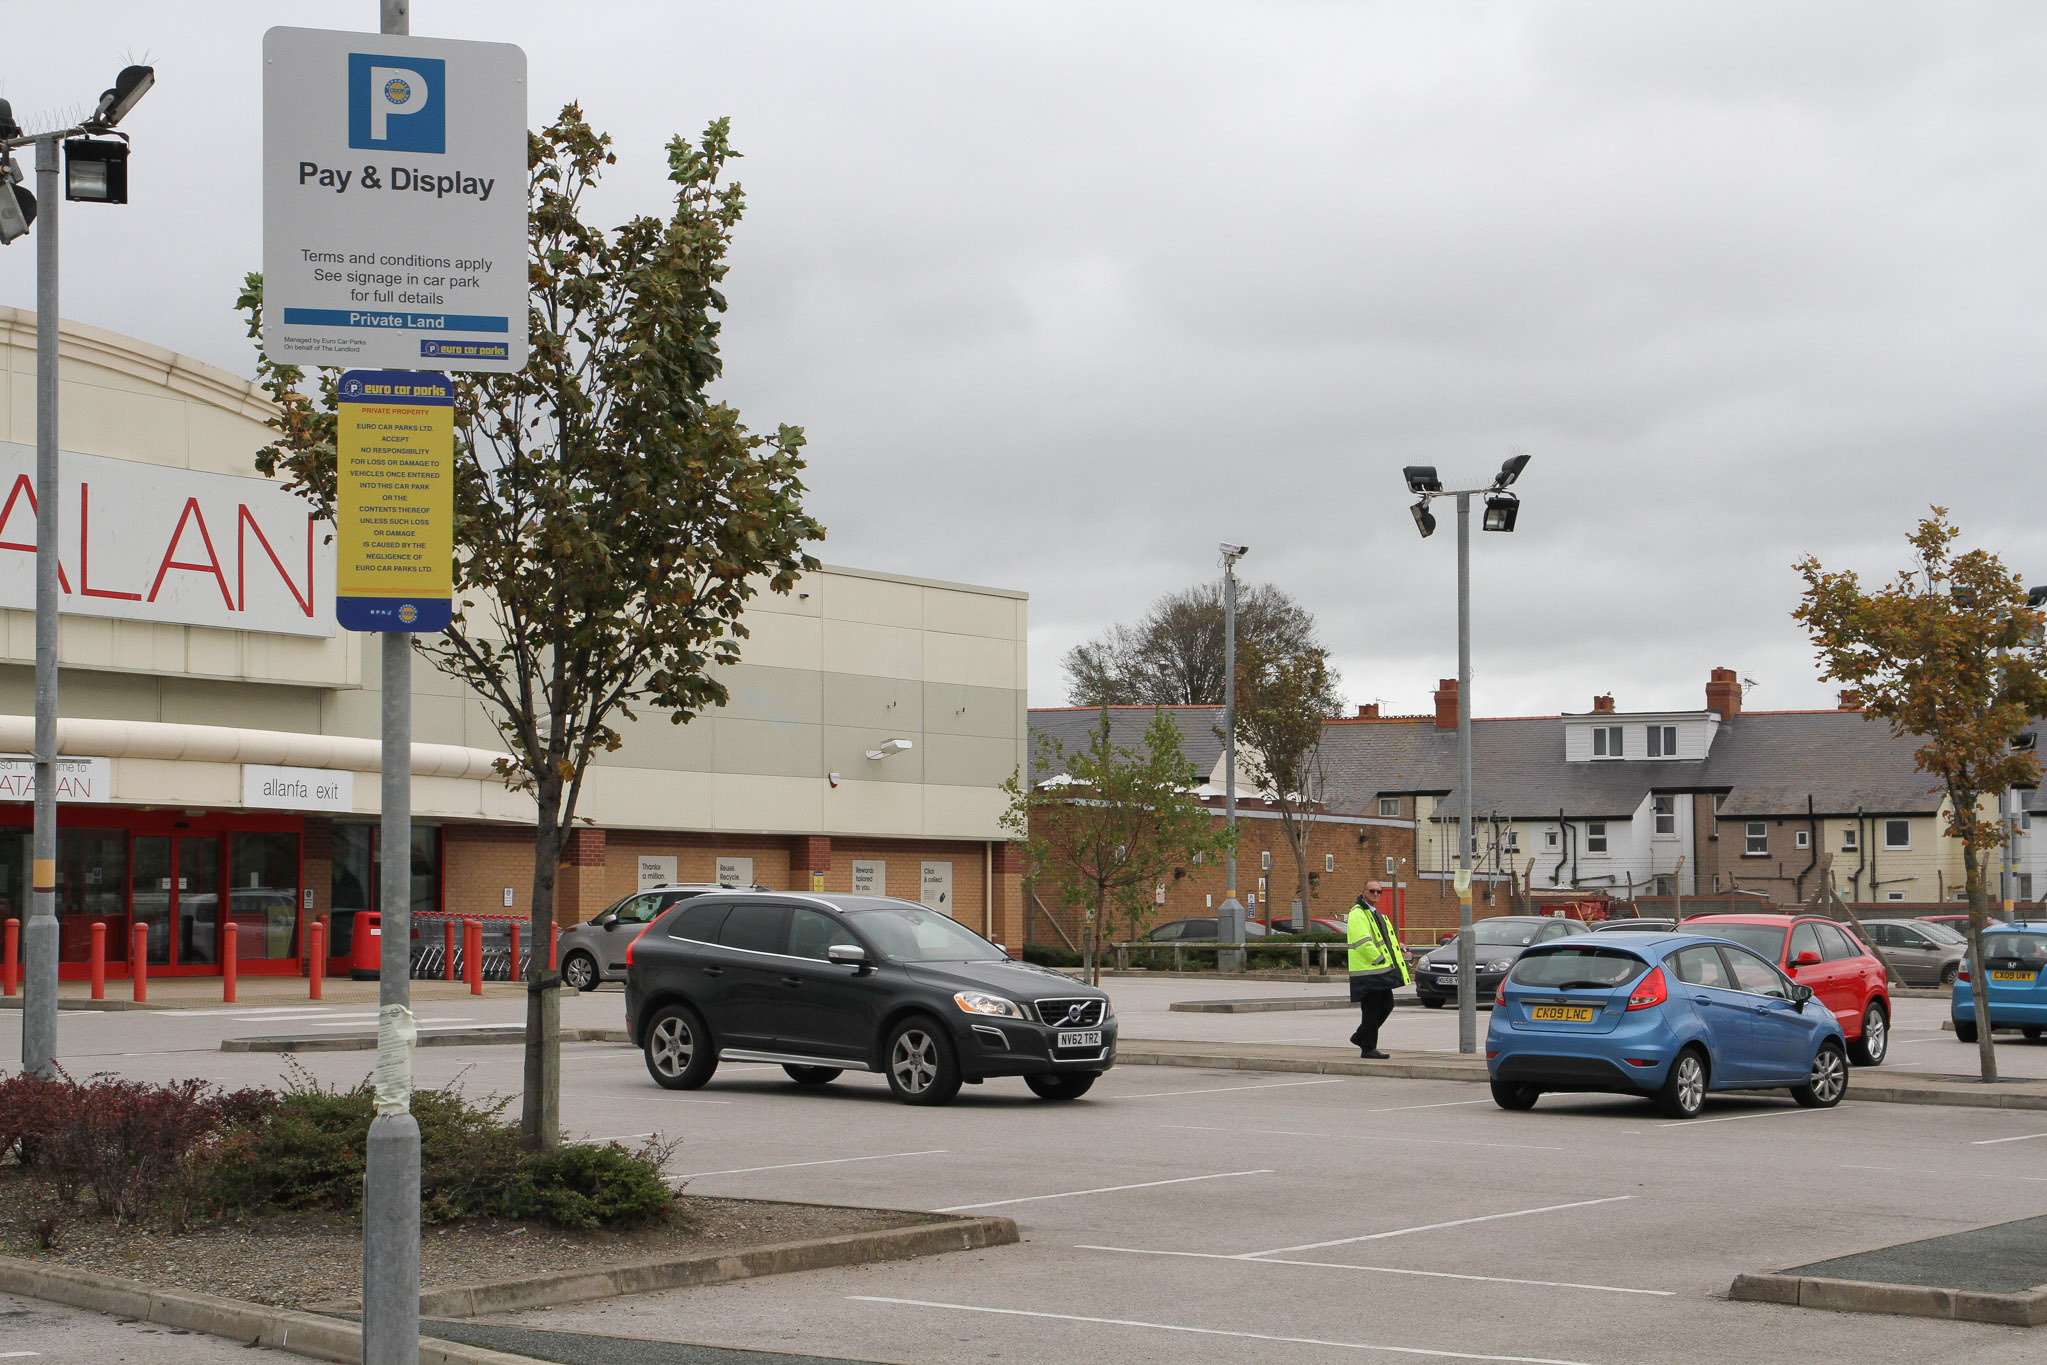 Car Park Owner Wins Appeal To Impose Charges Rhyl Journal